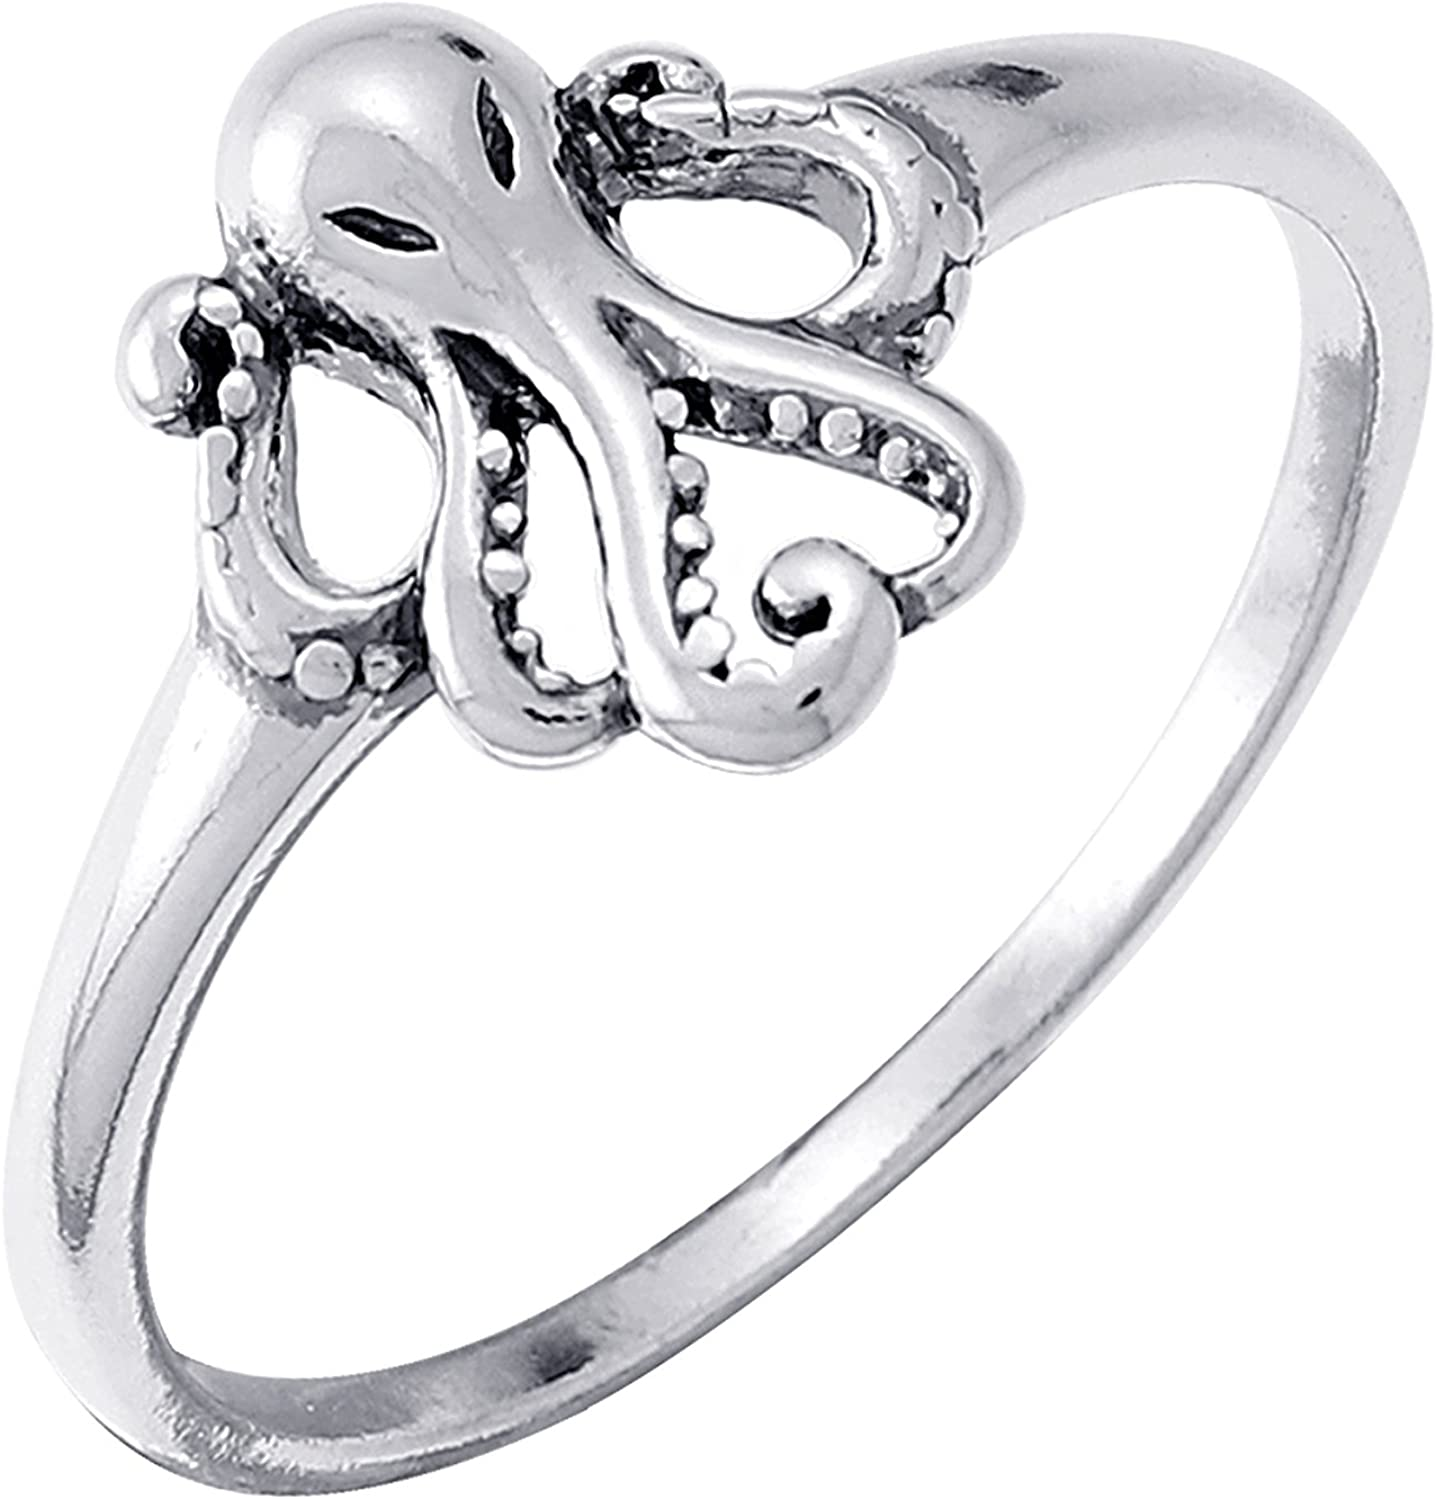 Boma Jewelry Sterling Silver Octopus Ring